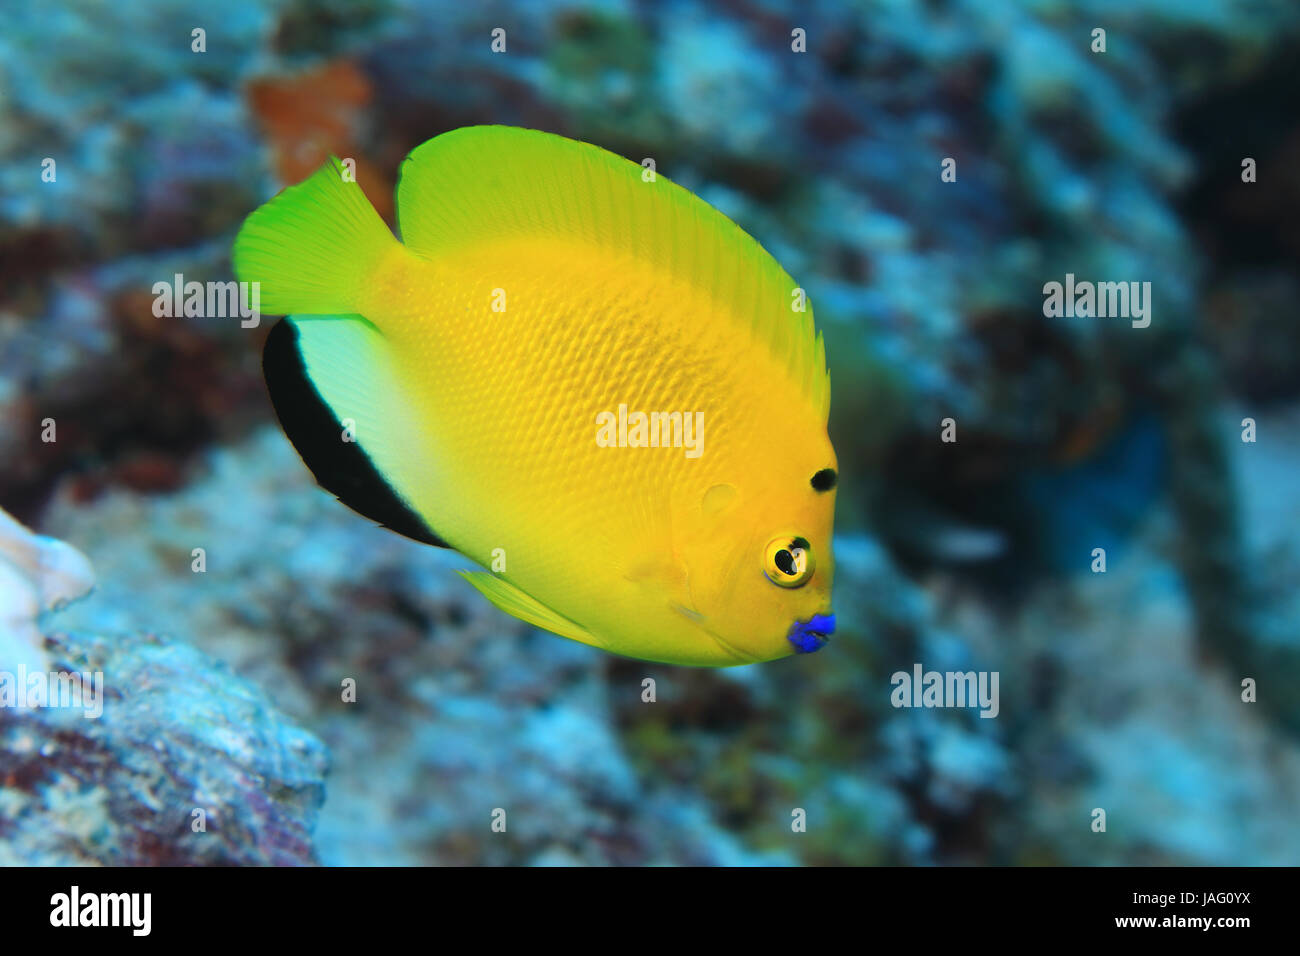 Treespot angelfish (Apolemichthys trimaculatus) underwater in the indian ocean - Stock Image